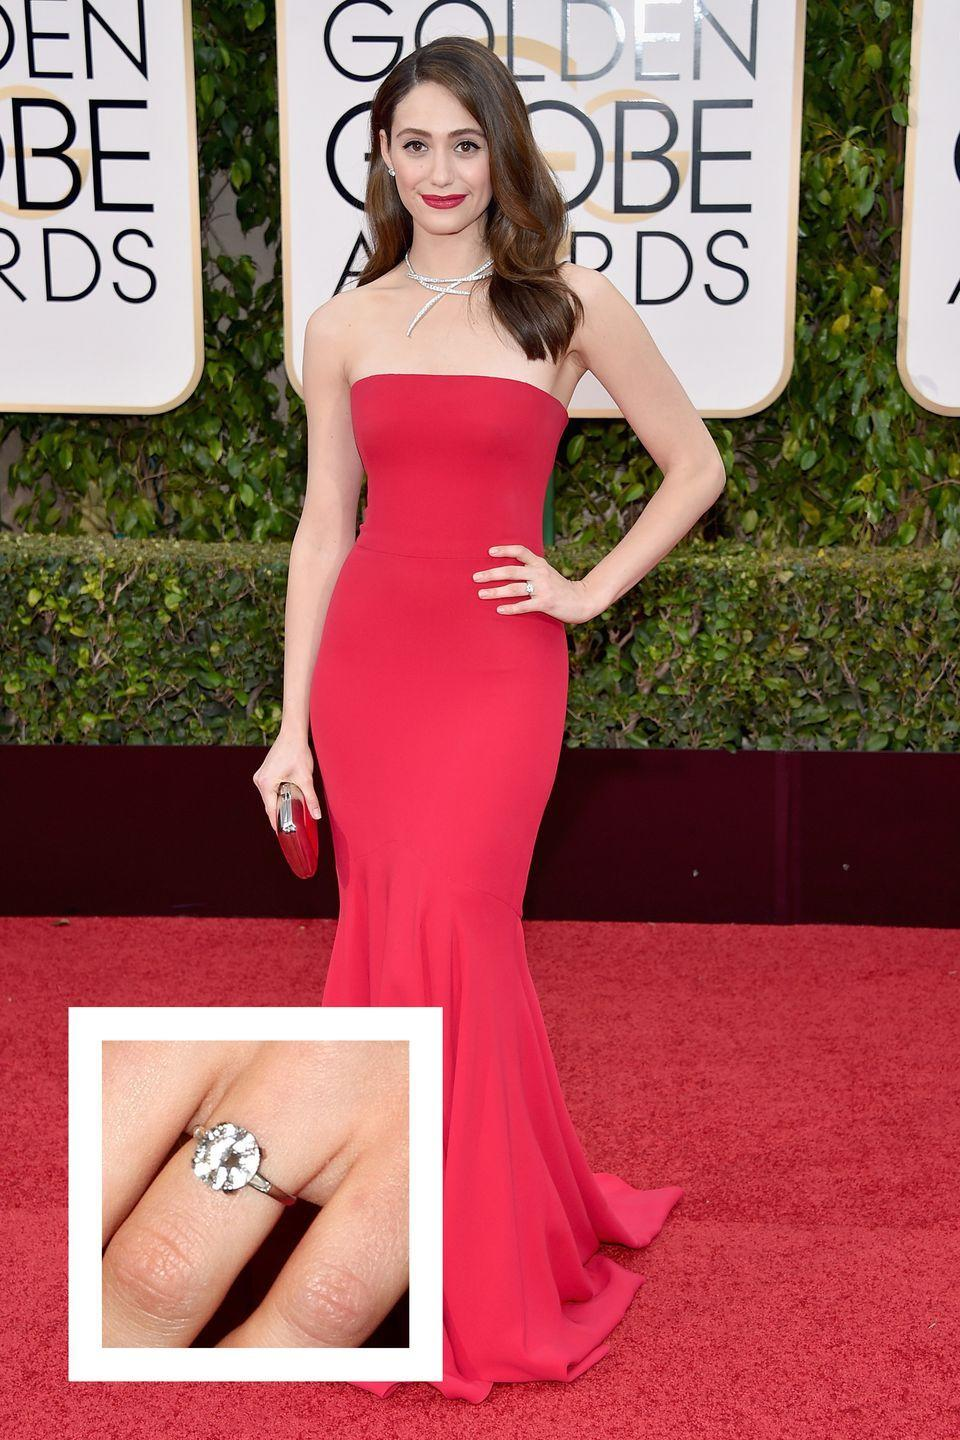 """<p>Rossum's now-husband Sam Esmail proposed with an elegant vintage ring that has truly stood the test of time: it dates back to Paris in the 1920s, <a href=""""https://www.brides.com/story/emmy-rossum-vintage-engagement-ring-details"""" rel=""""nofollow noopener"""" target=""""_blank"""" data-ylk=""""slk:Brides reports."""" class=""""link rapid-noclick-resp""""><em>Brides</em> reports.</a> Rossum's round solitaire ring is flanked by two baguettes on a platinum band. </p>"""